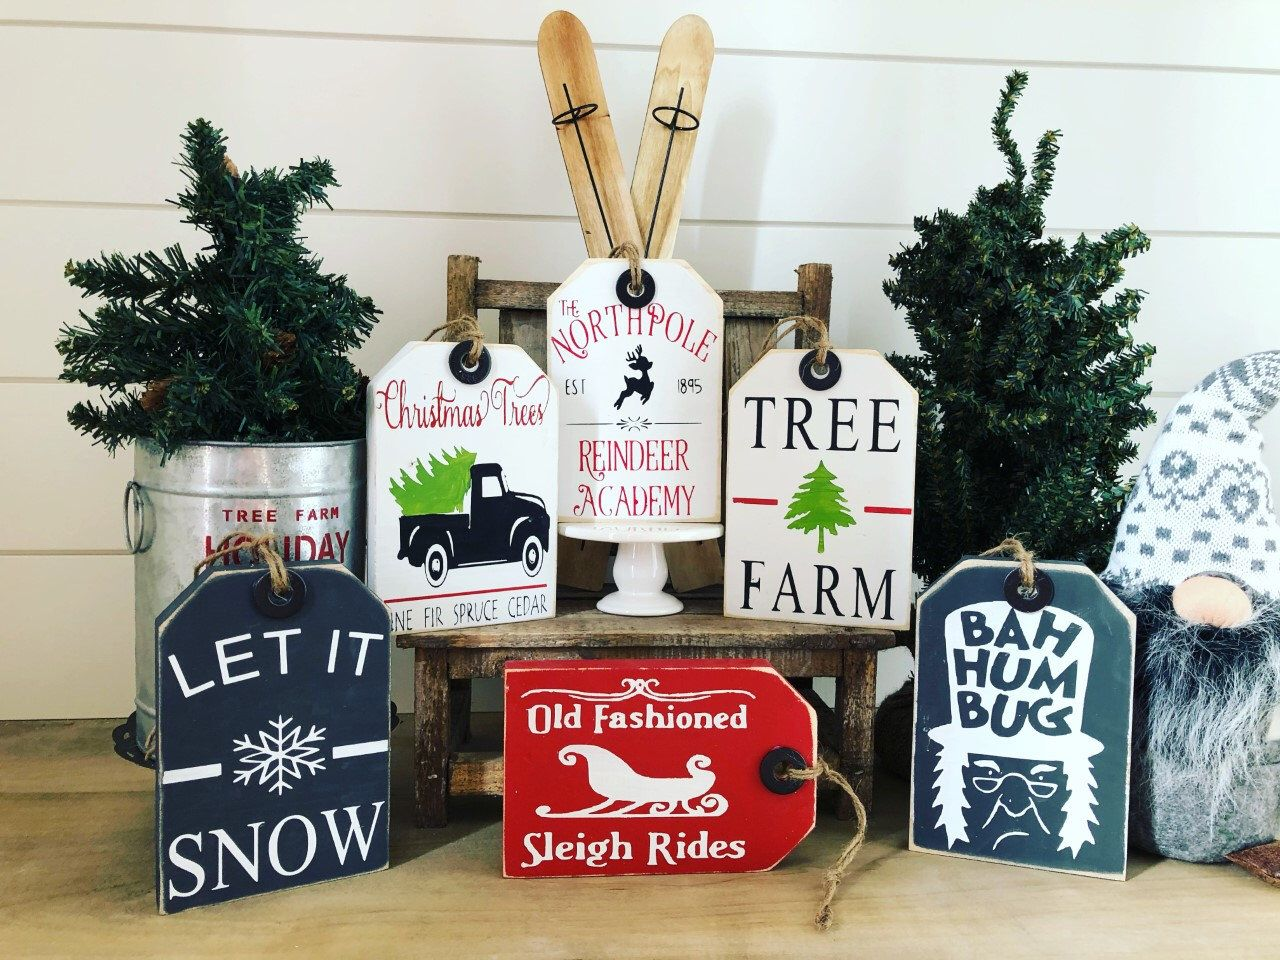 2020 Christmas Table Stting Ideas Holiday Decor // Christmas Wood tags // tiered tray signs